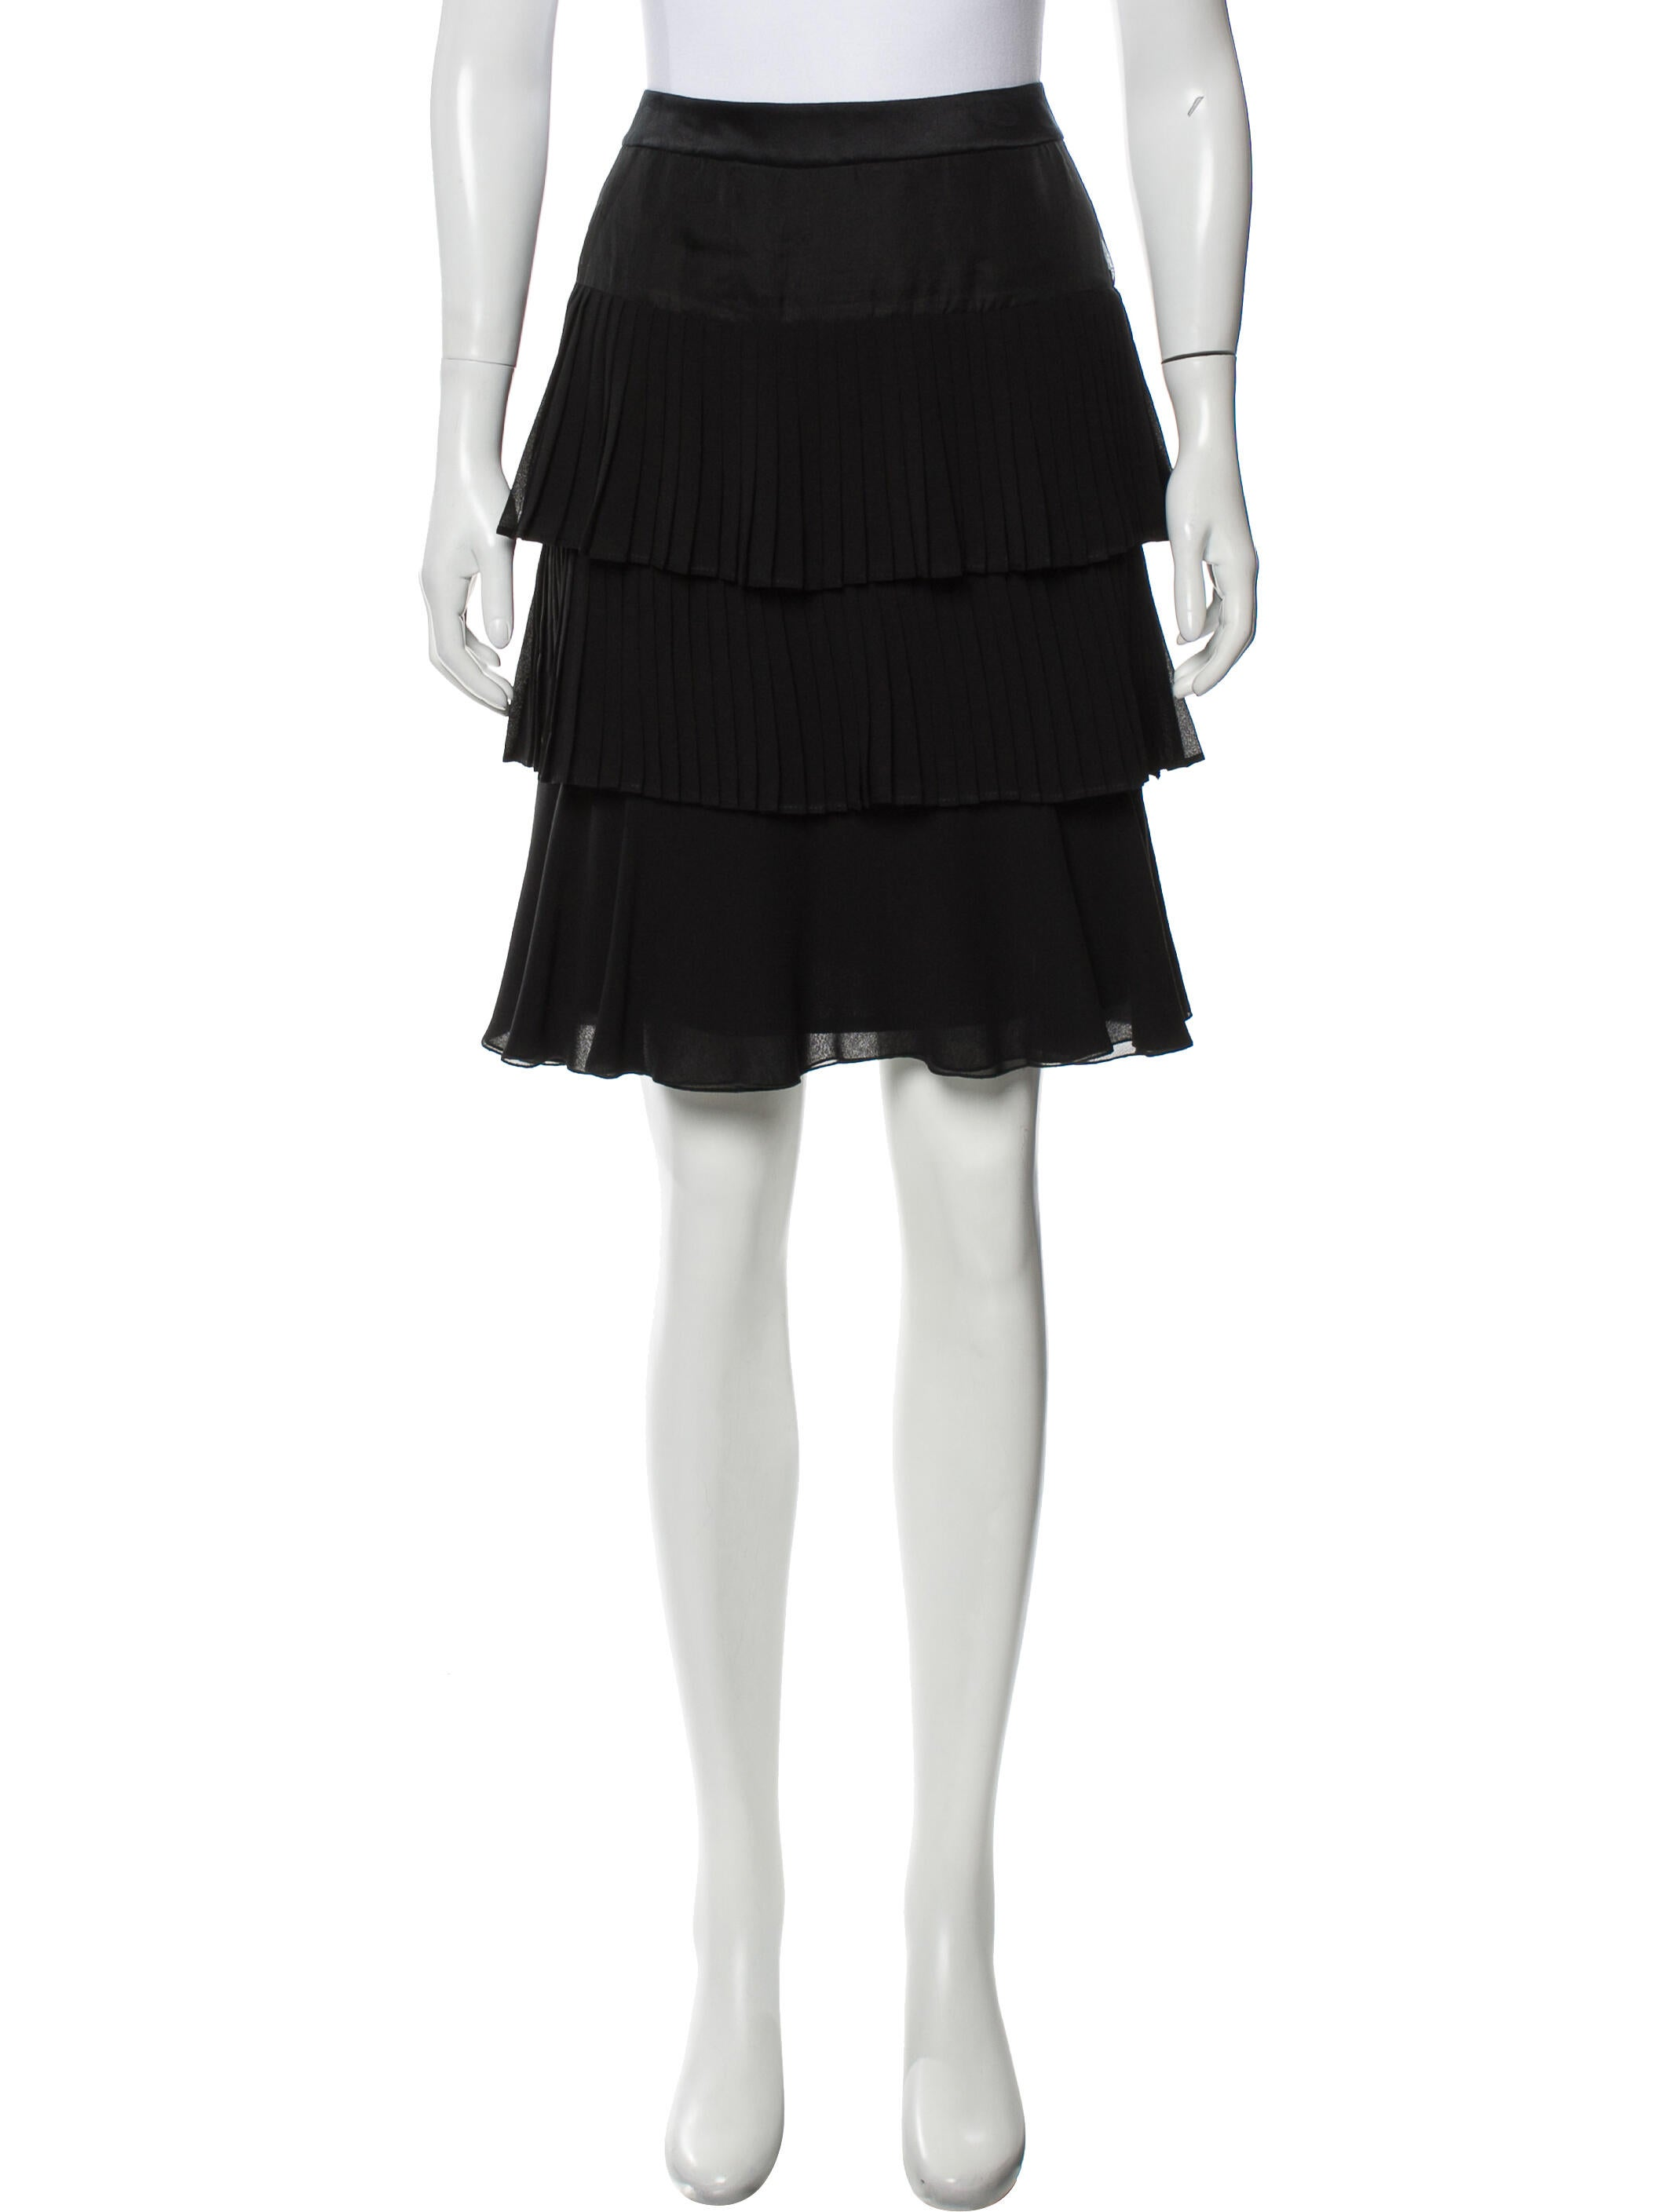 Valentino Ruffled Knee-Length Skirt - Clothing -           VAL162280 | The RealReal